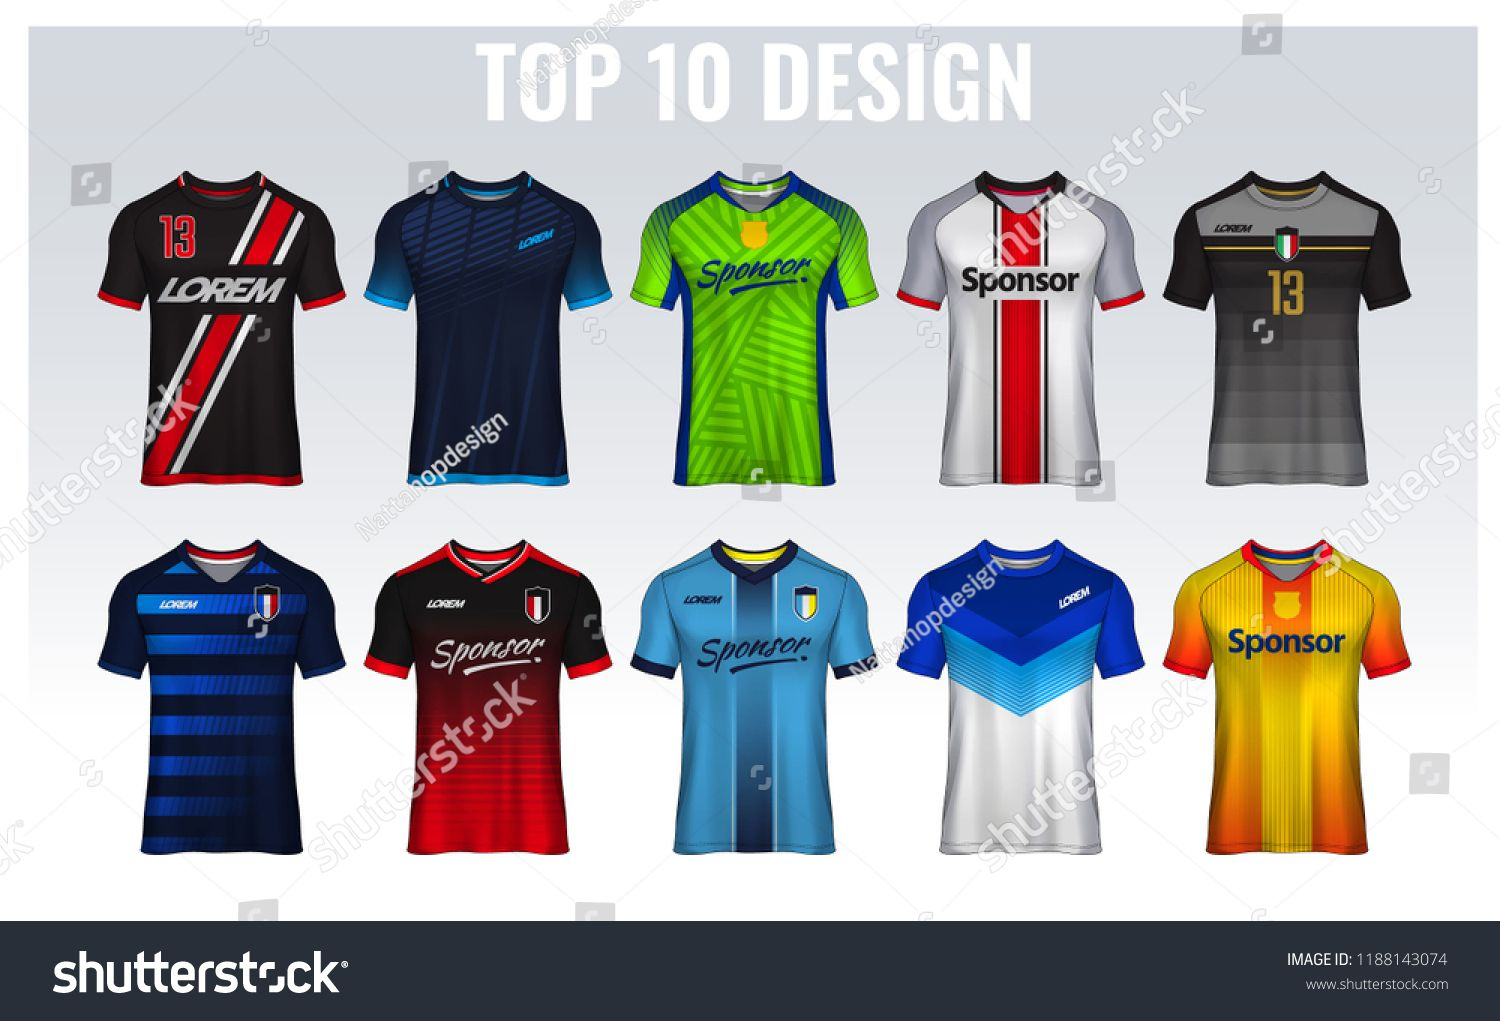 Download T Shirt Sport Design Template Soccer Jersey Mockup For Football Club Uniform Front And Back View Template Soccer Sports Design Soccer Jersey Sports Uniforms